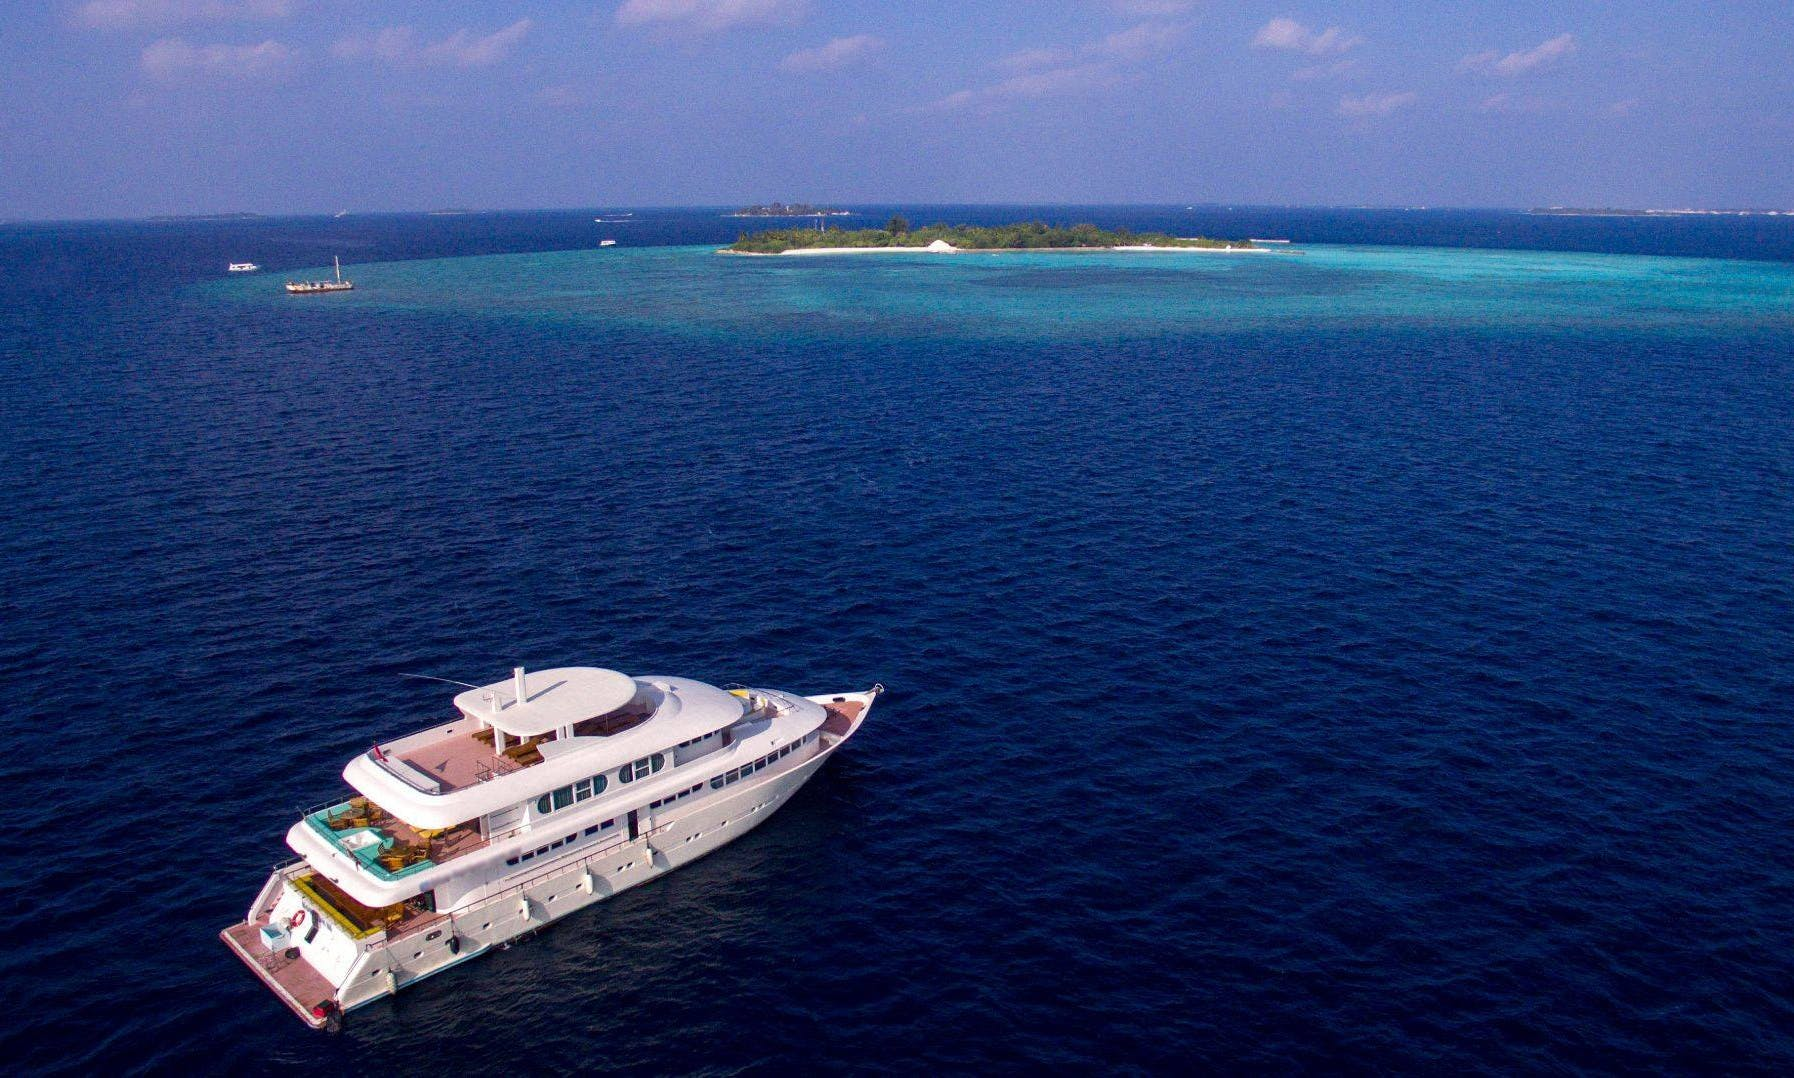 Diving Tour On-Board a Horizon 3 Mega Yacht for Up to 24 People in Malé, Maldives